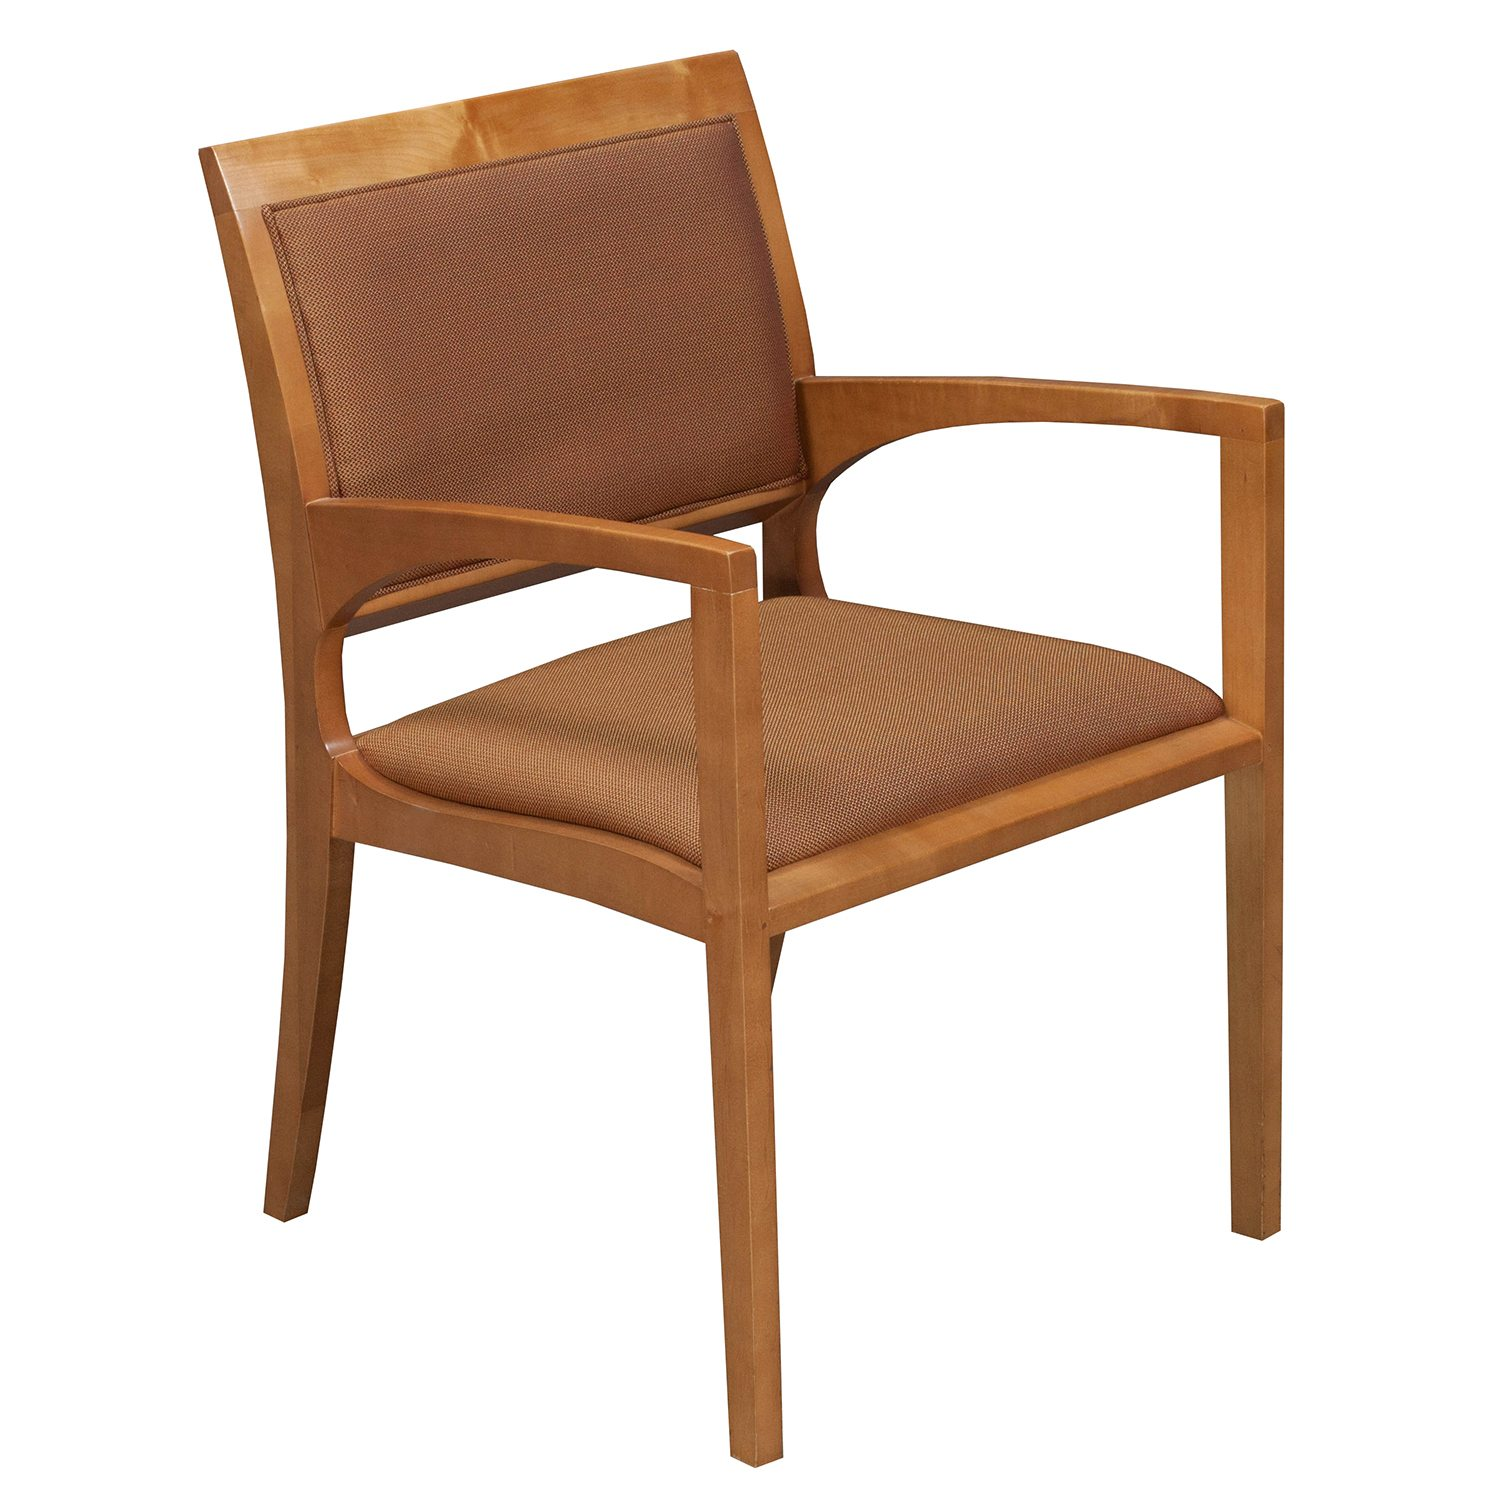 Bernhardt Used Wood Side Chair Tan National Office